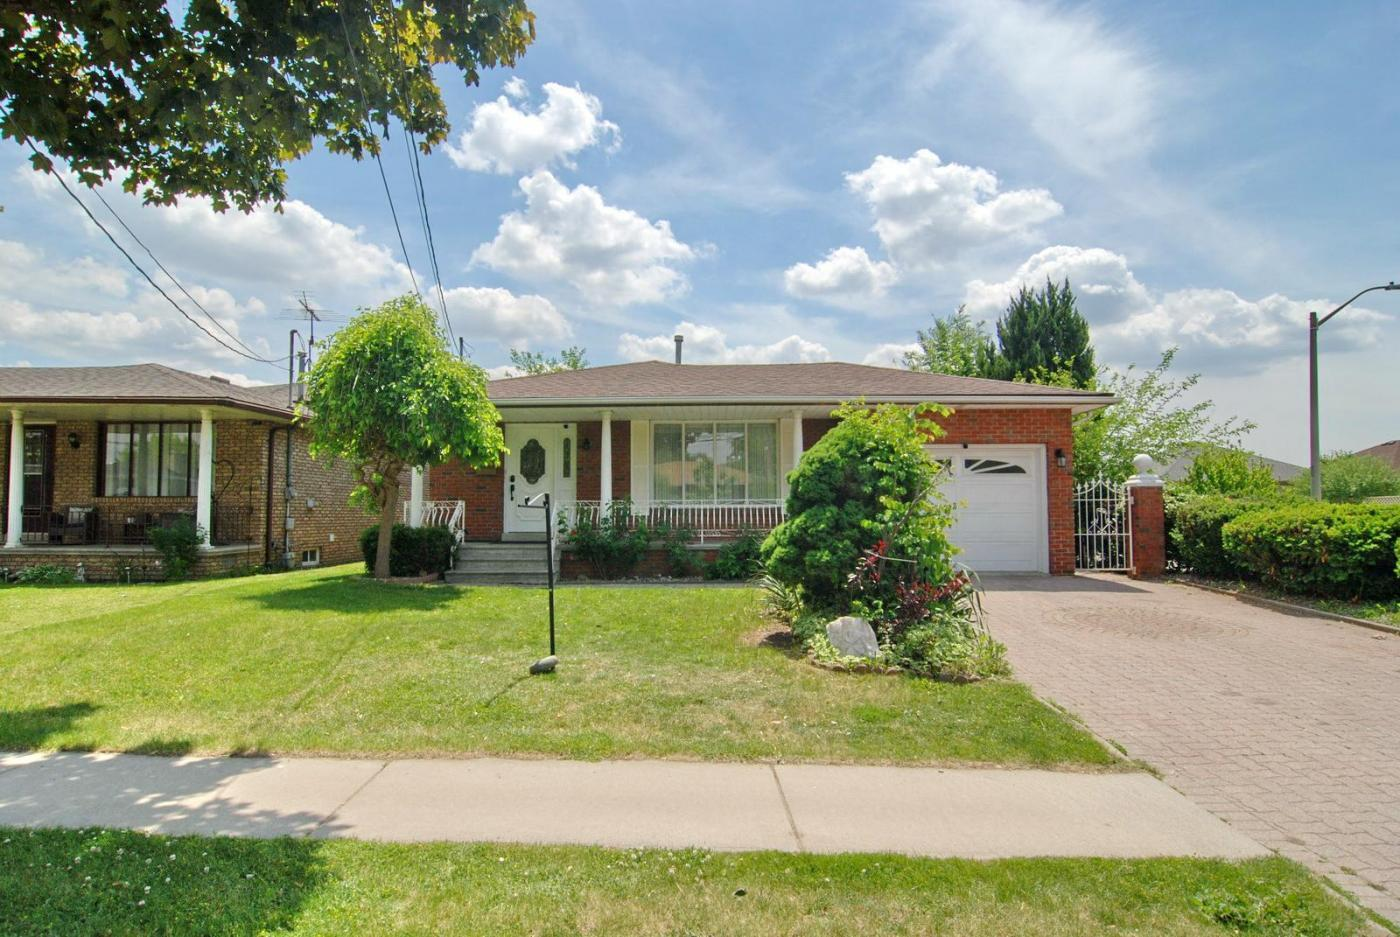 Excellent Location Having Quick Access To Hwy 401